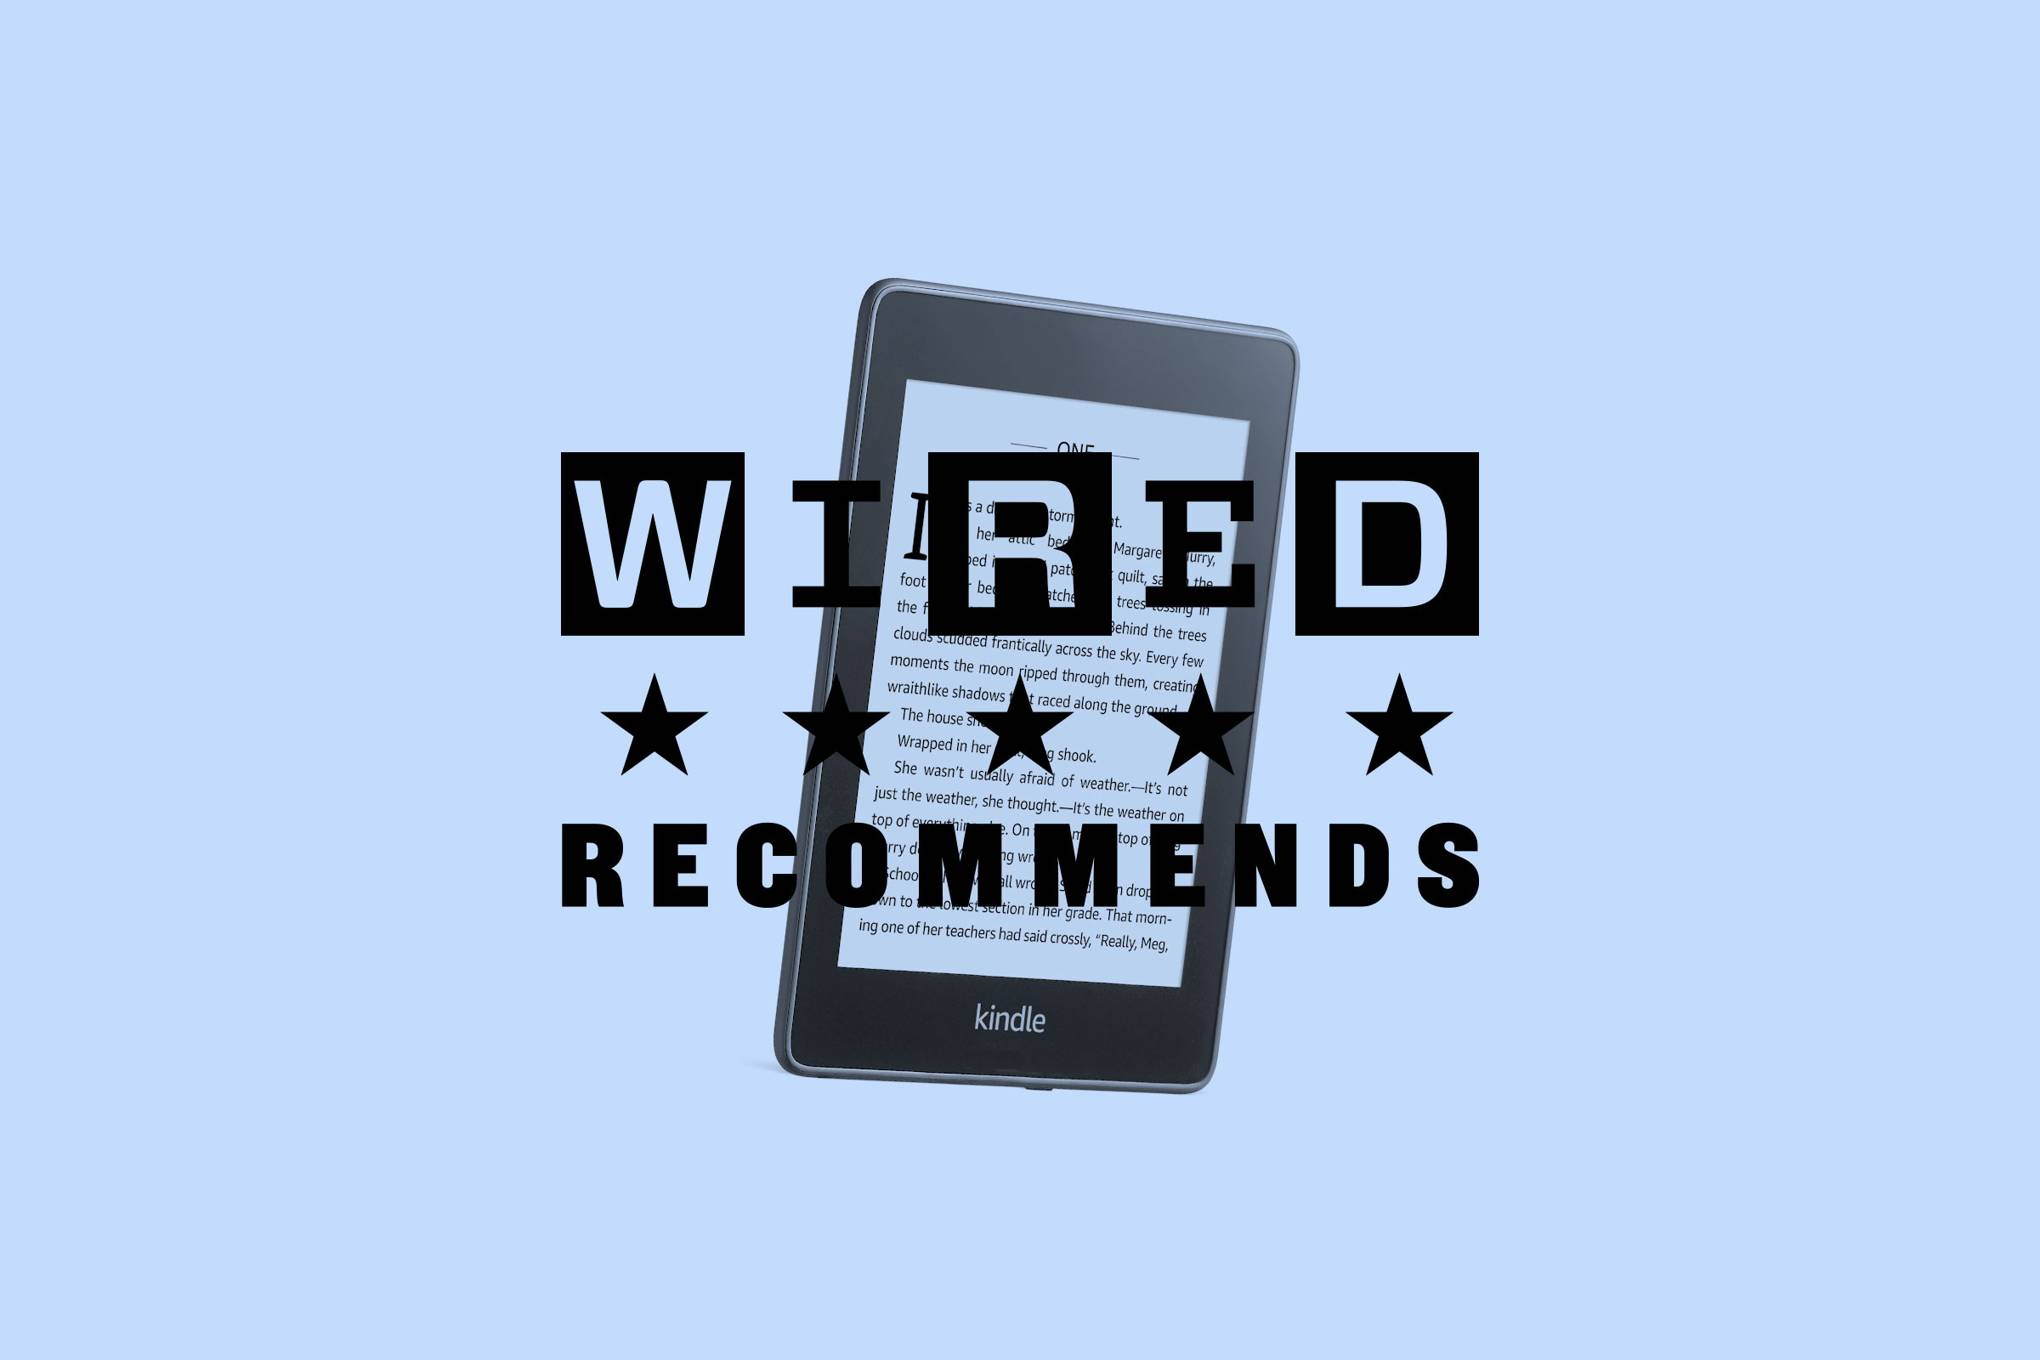 ddccf73ed1d1 Best Kindle 2019  The best e-readers in 2019